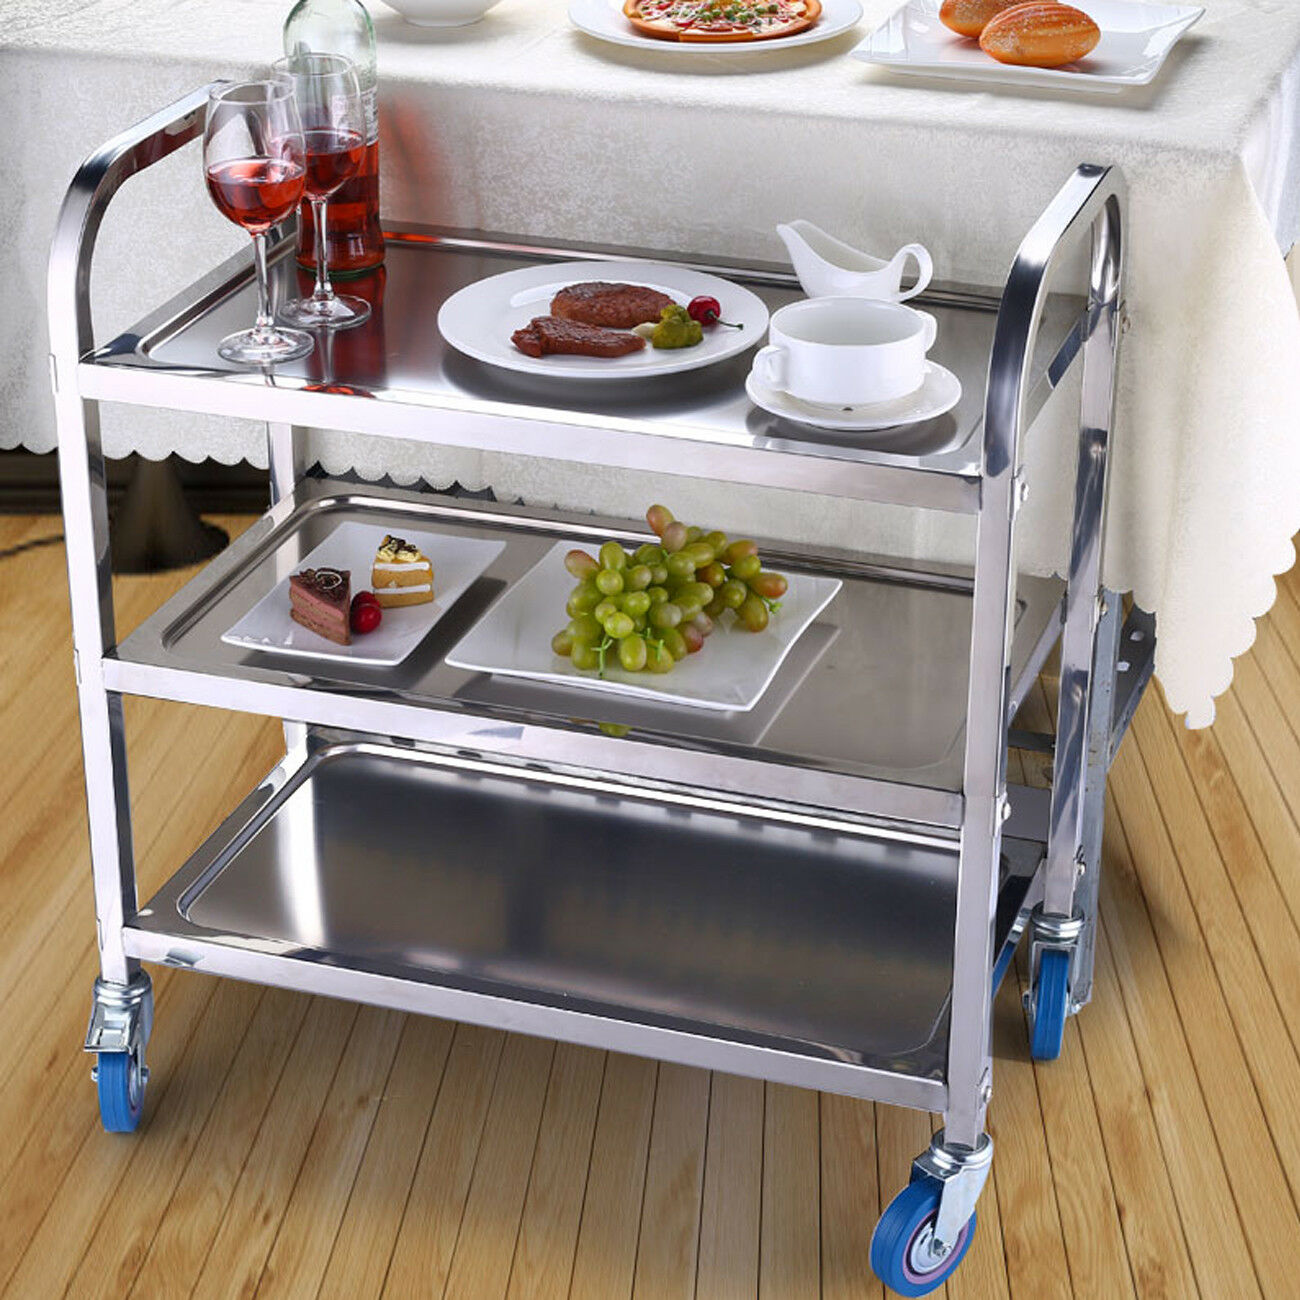 96*50*93.5cm Stainless Steel Kitchen Trolley Cart Storage Rack Holder 3-layer Dining Serving Carts